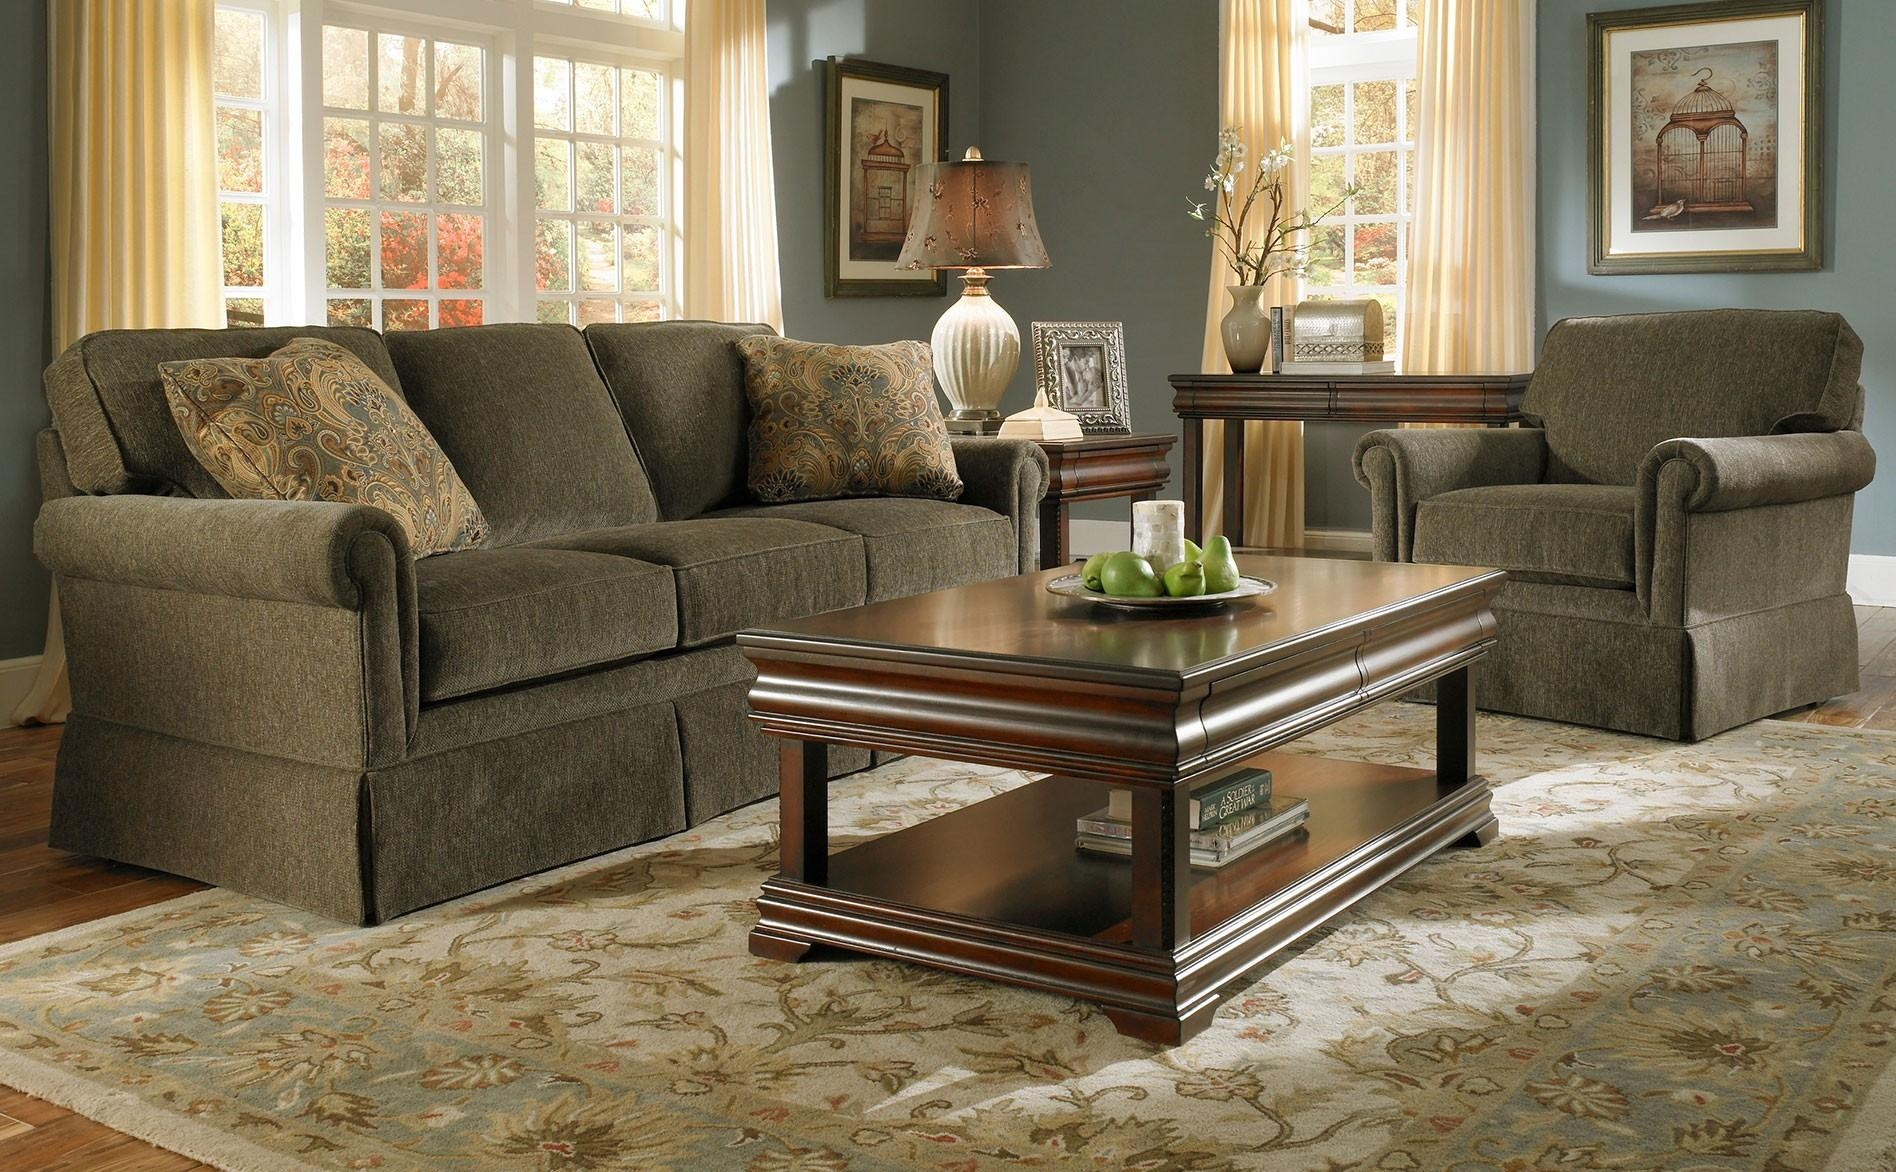 Furniture: Pick Your Lovely Broyhill Couch Design For Your Living Within Broyhill Sectional Sleeper Sofas (Image 16 of 20)